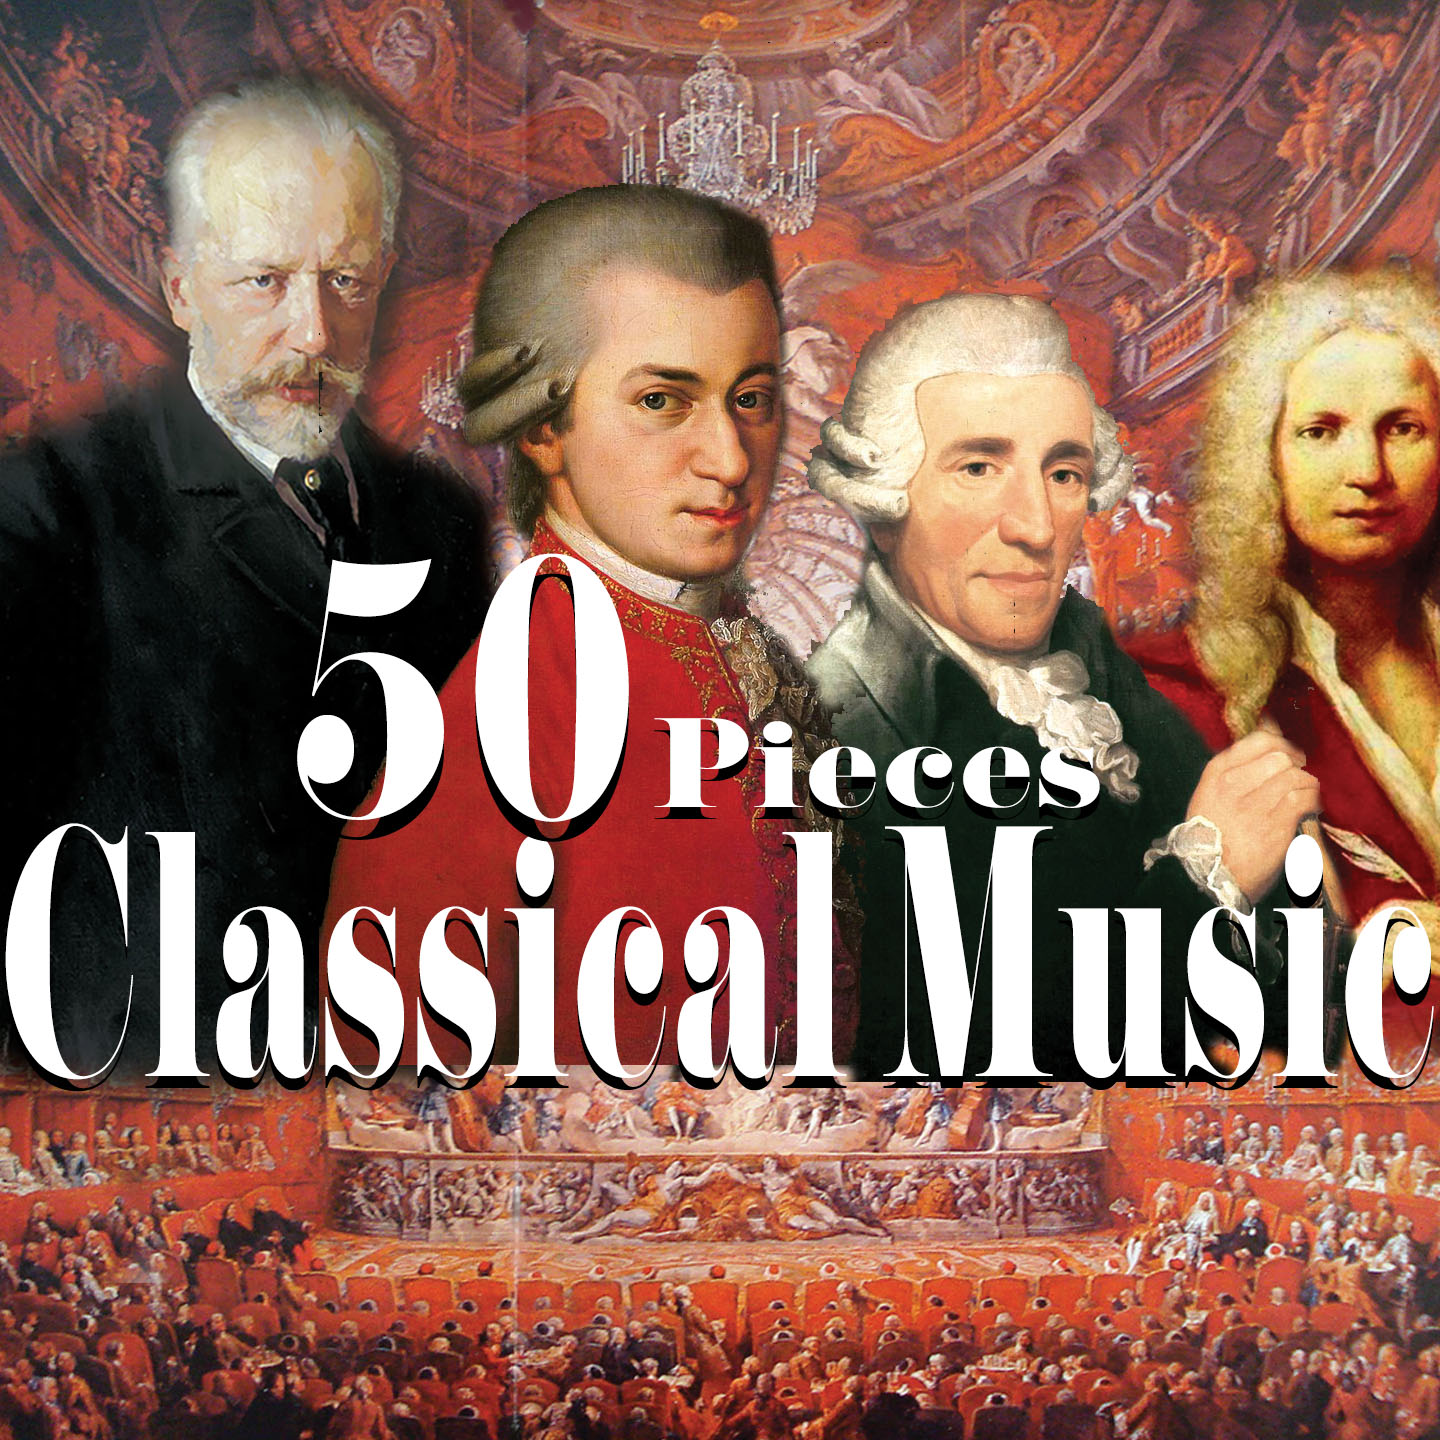 Classical Music - 50 Pieces